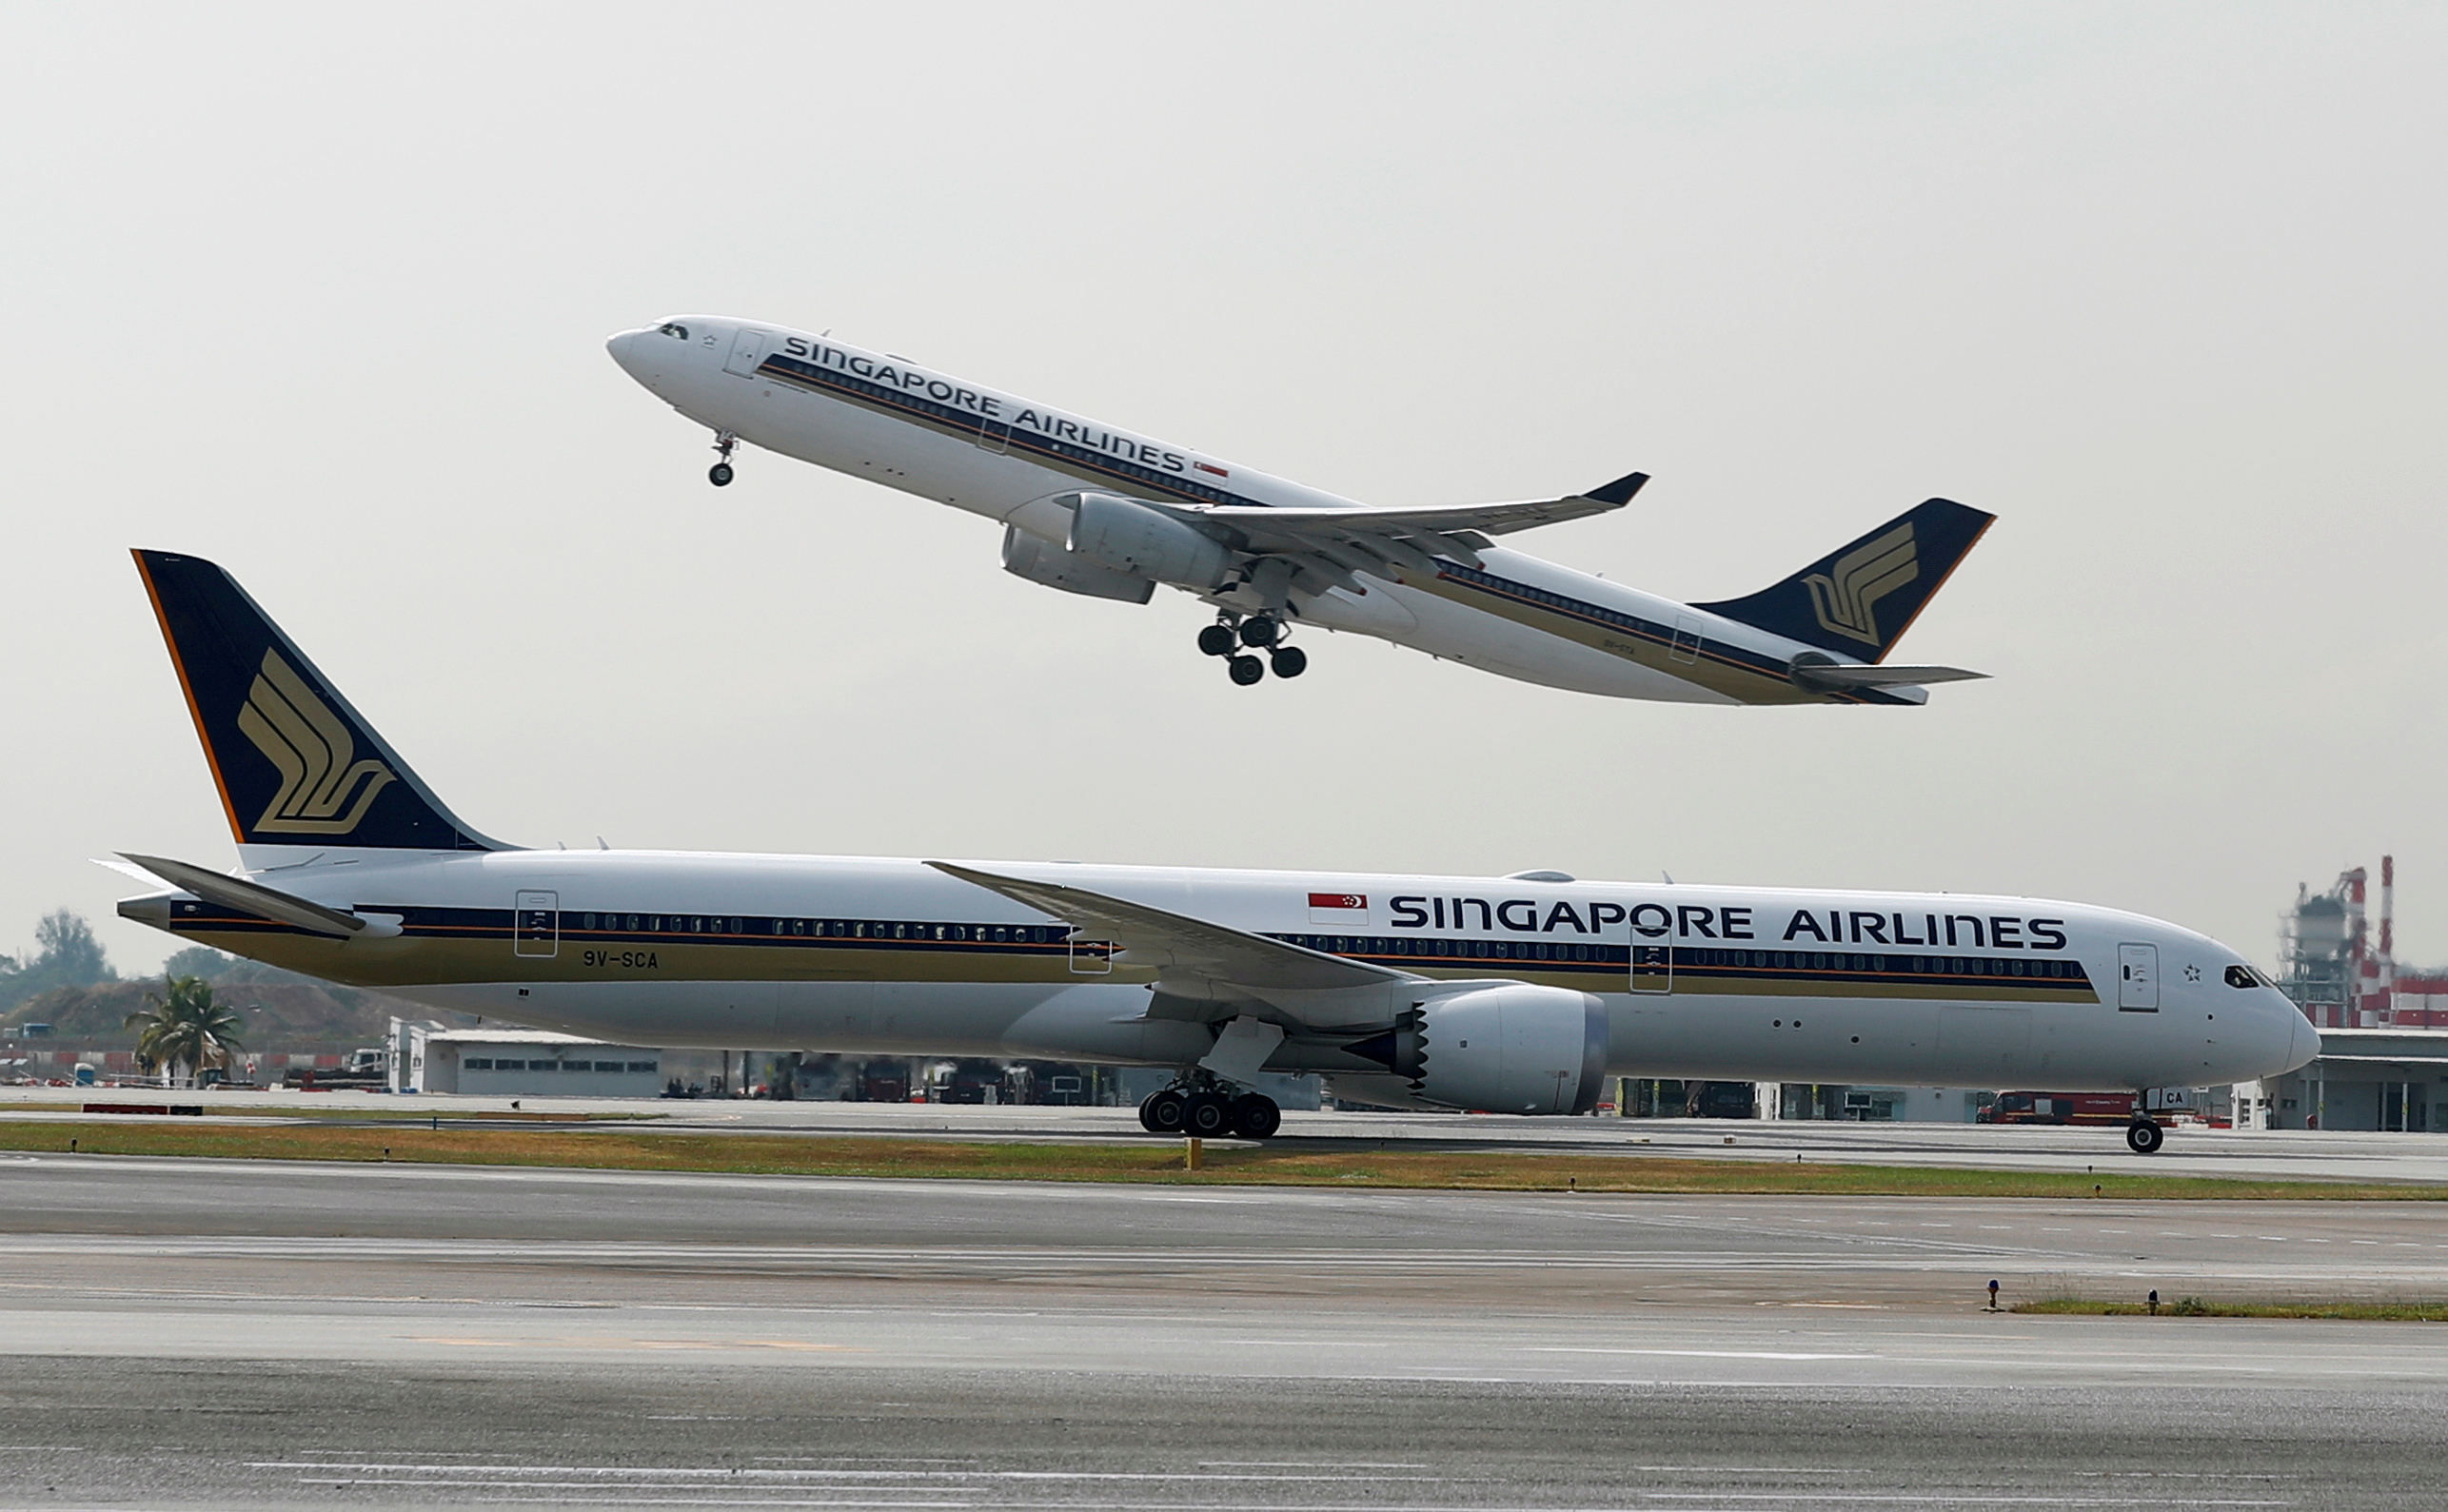 A Singapore Airlines Airbus A330-300 plane takes off behind a Boeing 787-10 Dreamliner at Changi Airport in Singapore March 28, 2018. REUTERS/Edgar Su/File Photo